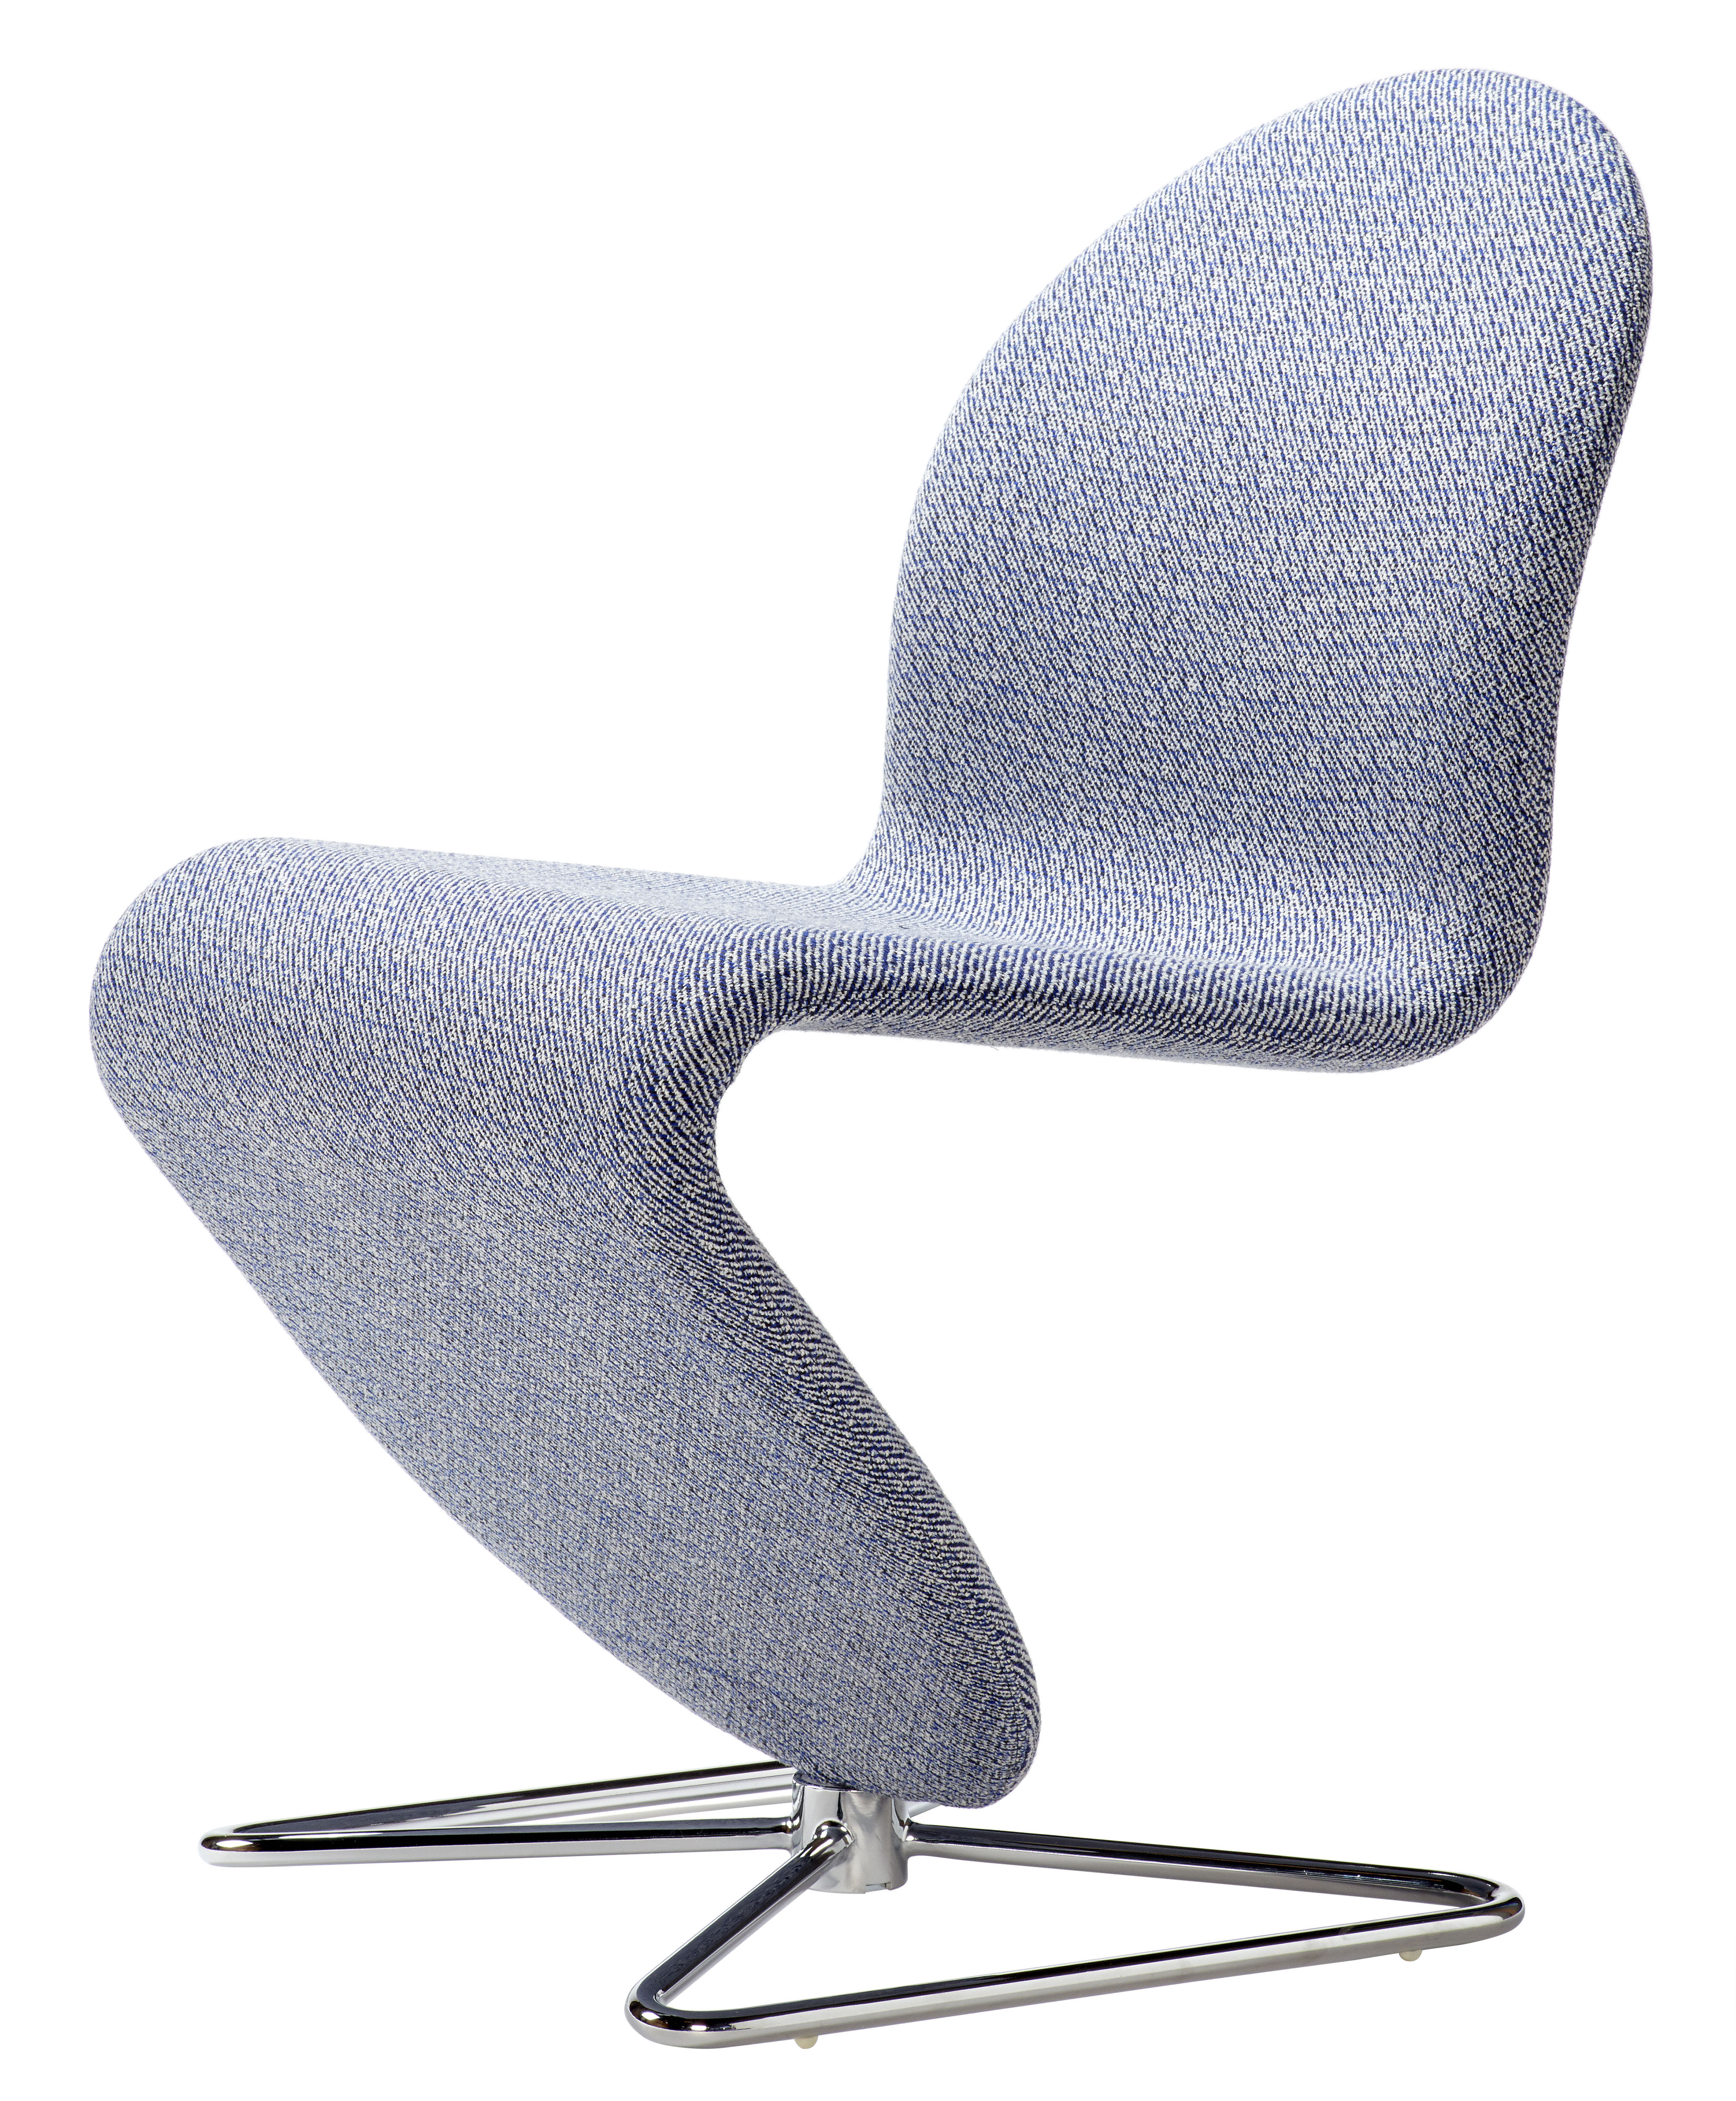 Furniture - Chairs - 123 Padded chair - Raf Simons fabric by Verpan - Noise grey - Chromed steel, Foam, Kvadrat fabric